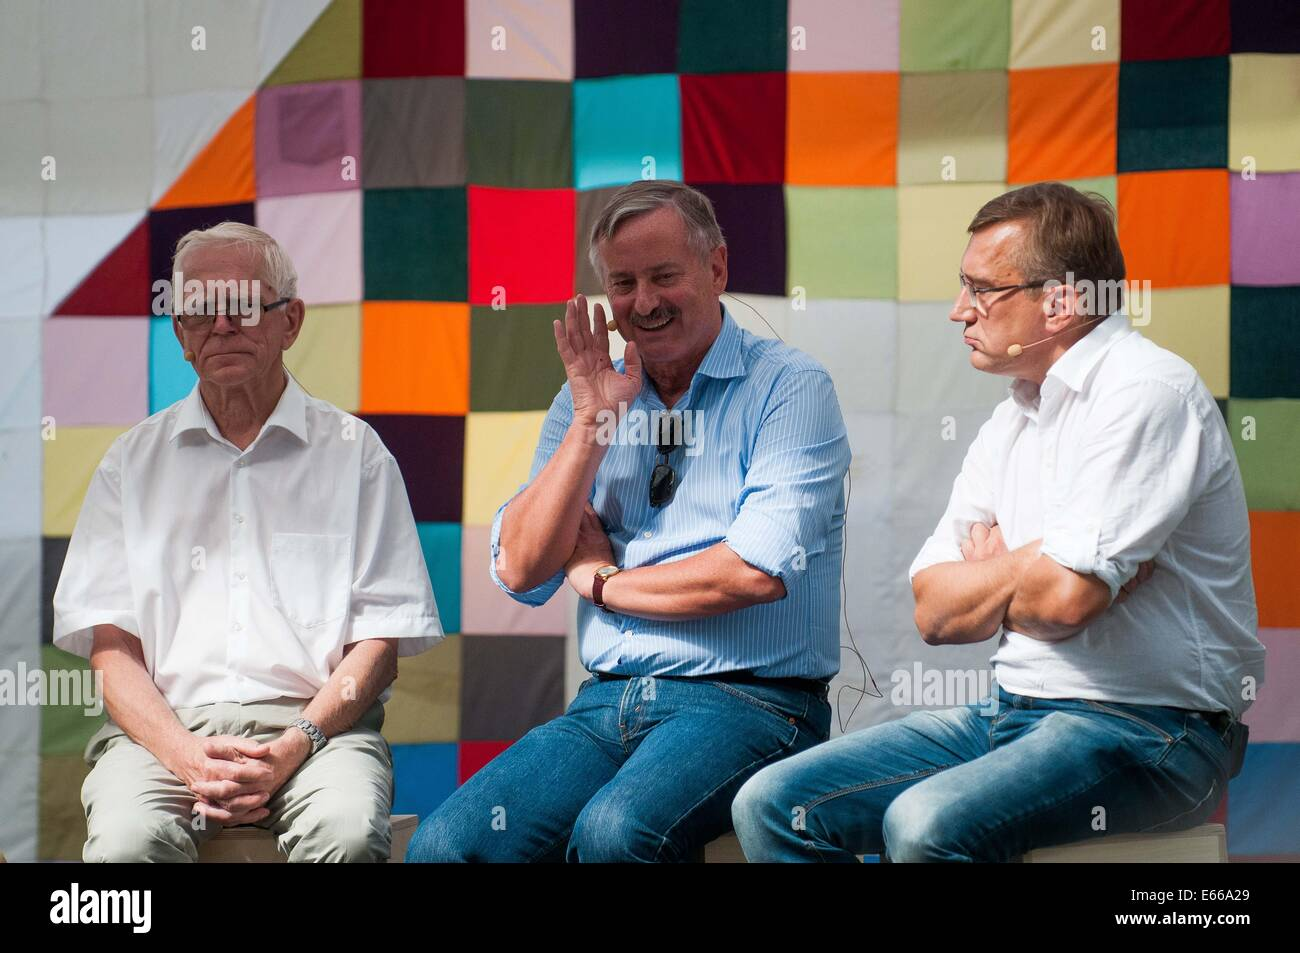 Paide, Estonia. 15th Aug, 2014. People give their opinions at a session during the Festival of Opinion Culture in - Stock Image